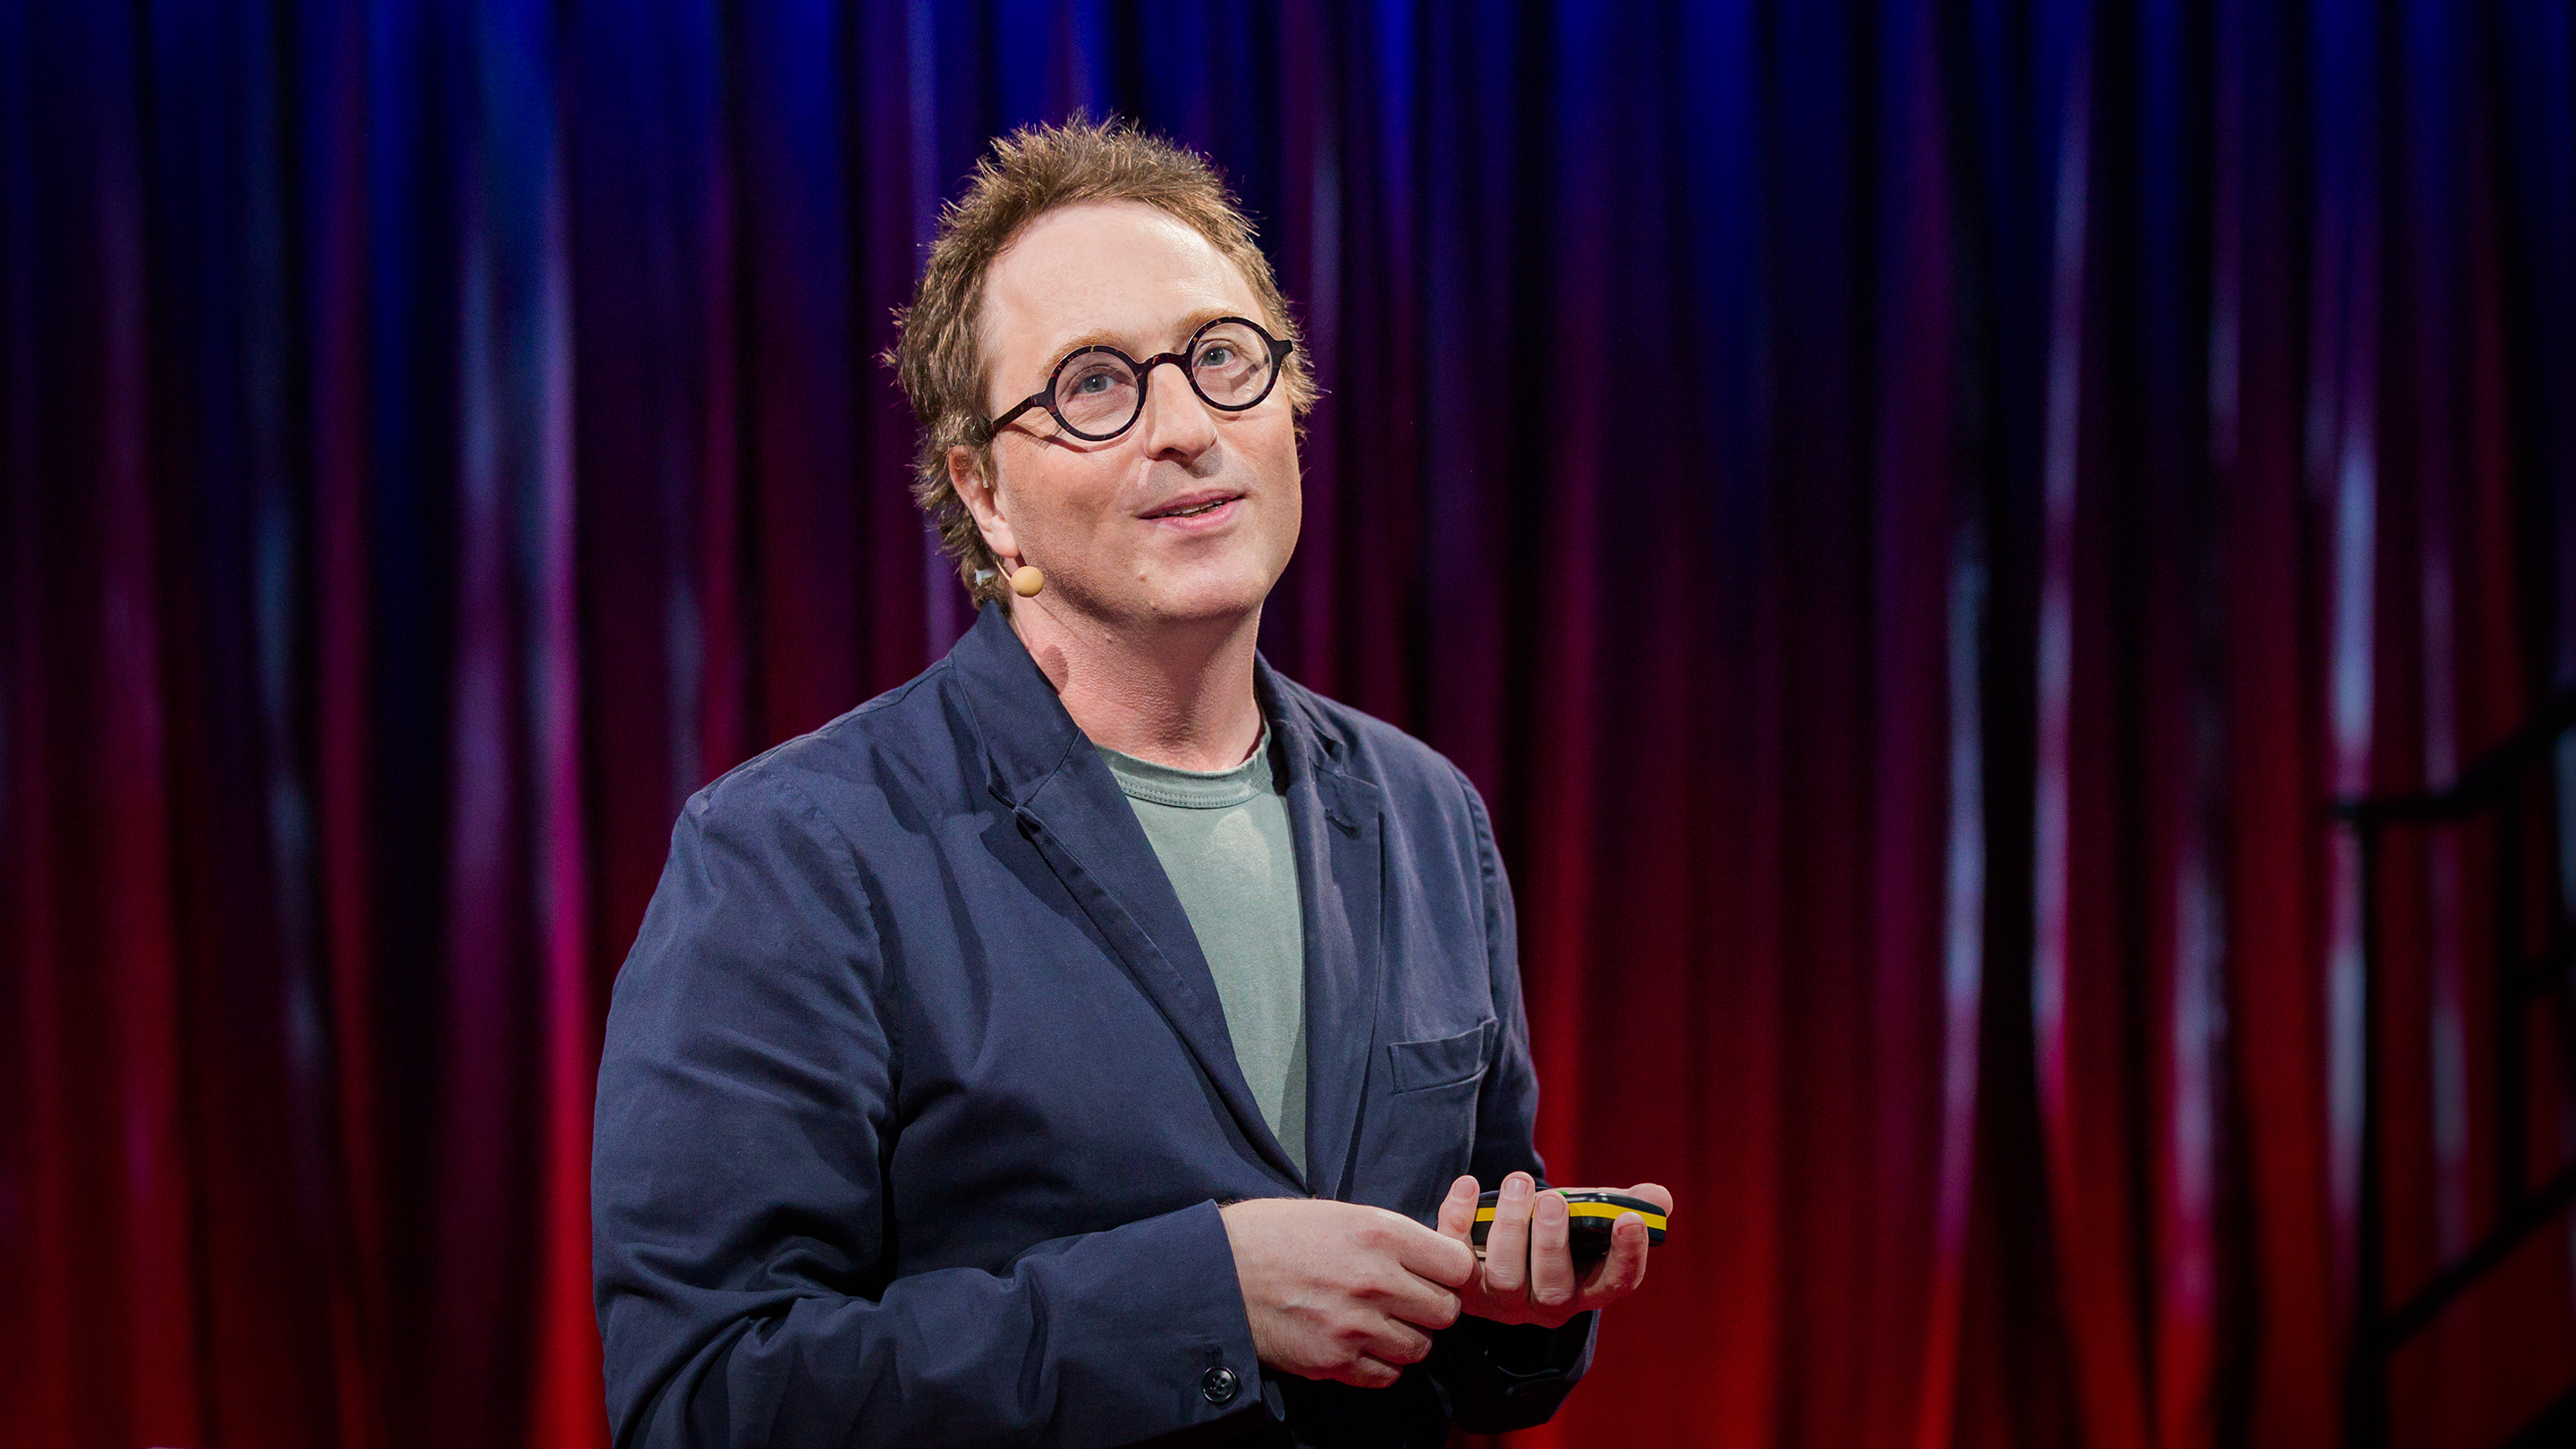 Jon Ronson: What happens when online shaming spirals out of control thumbnail